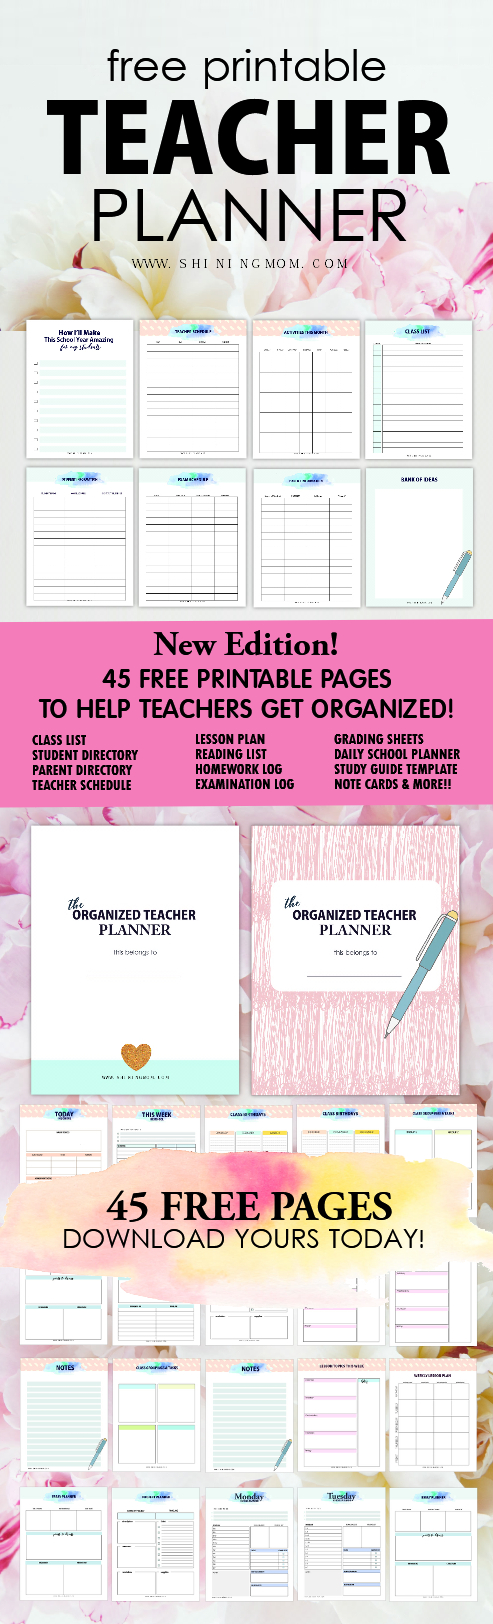 Free Printable Teacher Planner: 45+ School Organizing Templates! - Free Printable Teacher Planner